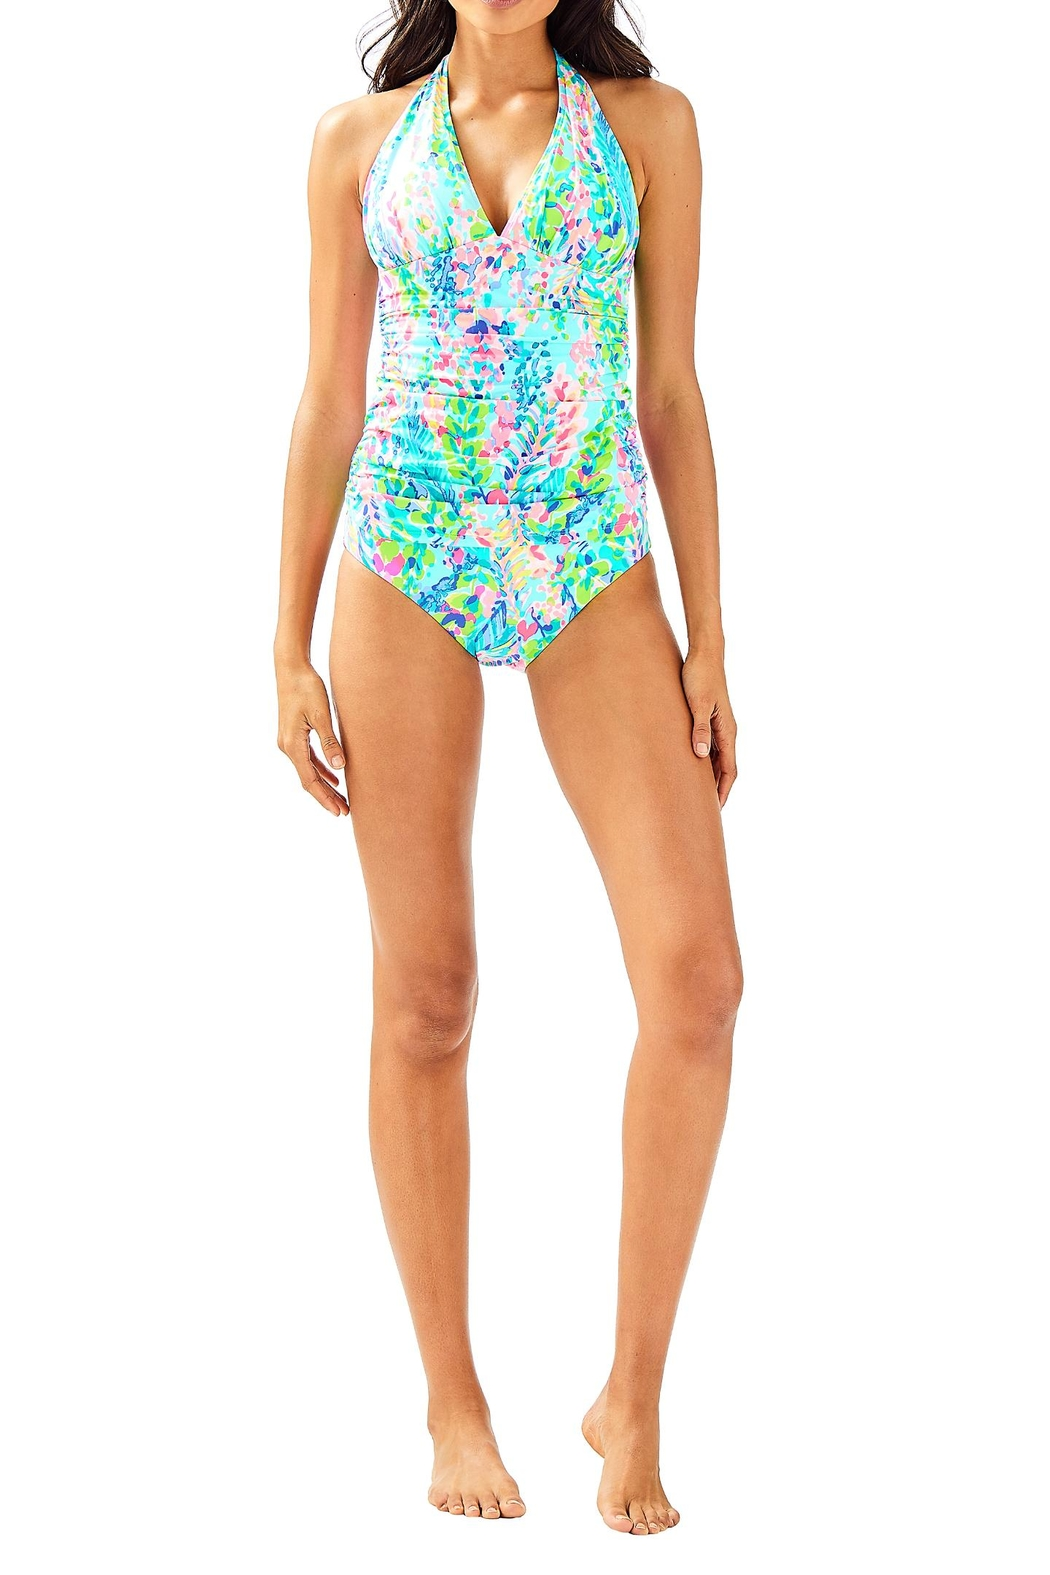 Lilly Pulitzer Bliss Tankini Top - Side Cropped Image